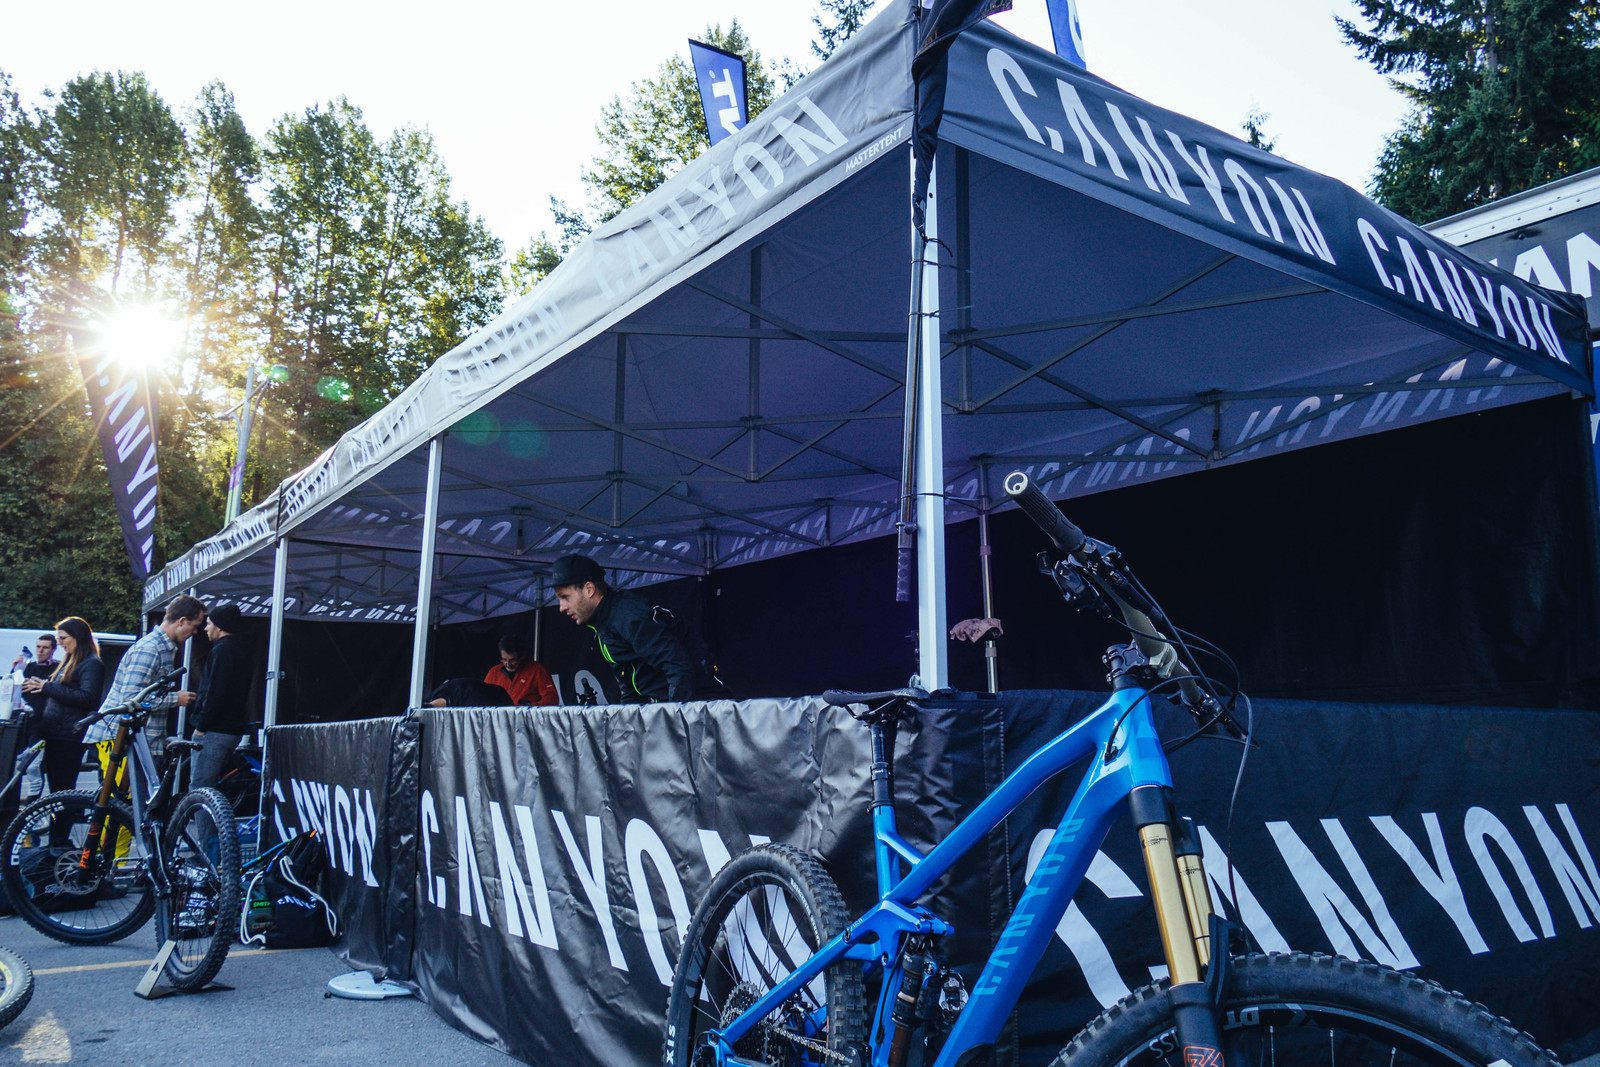 Early morning at the Canyon booth in the Crankworx Whistler expo.